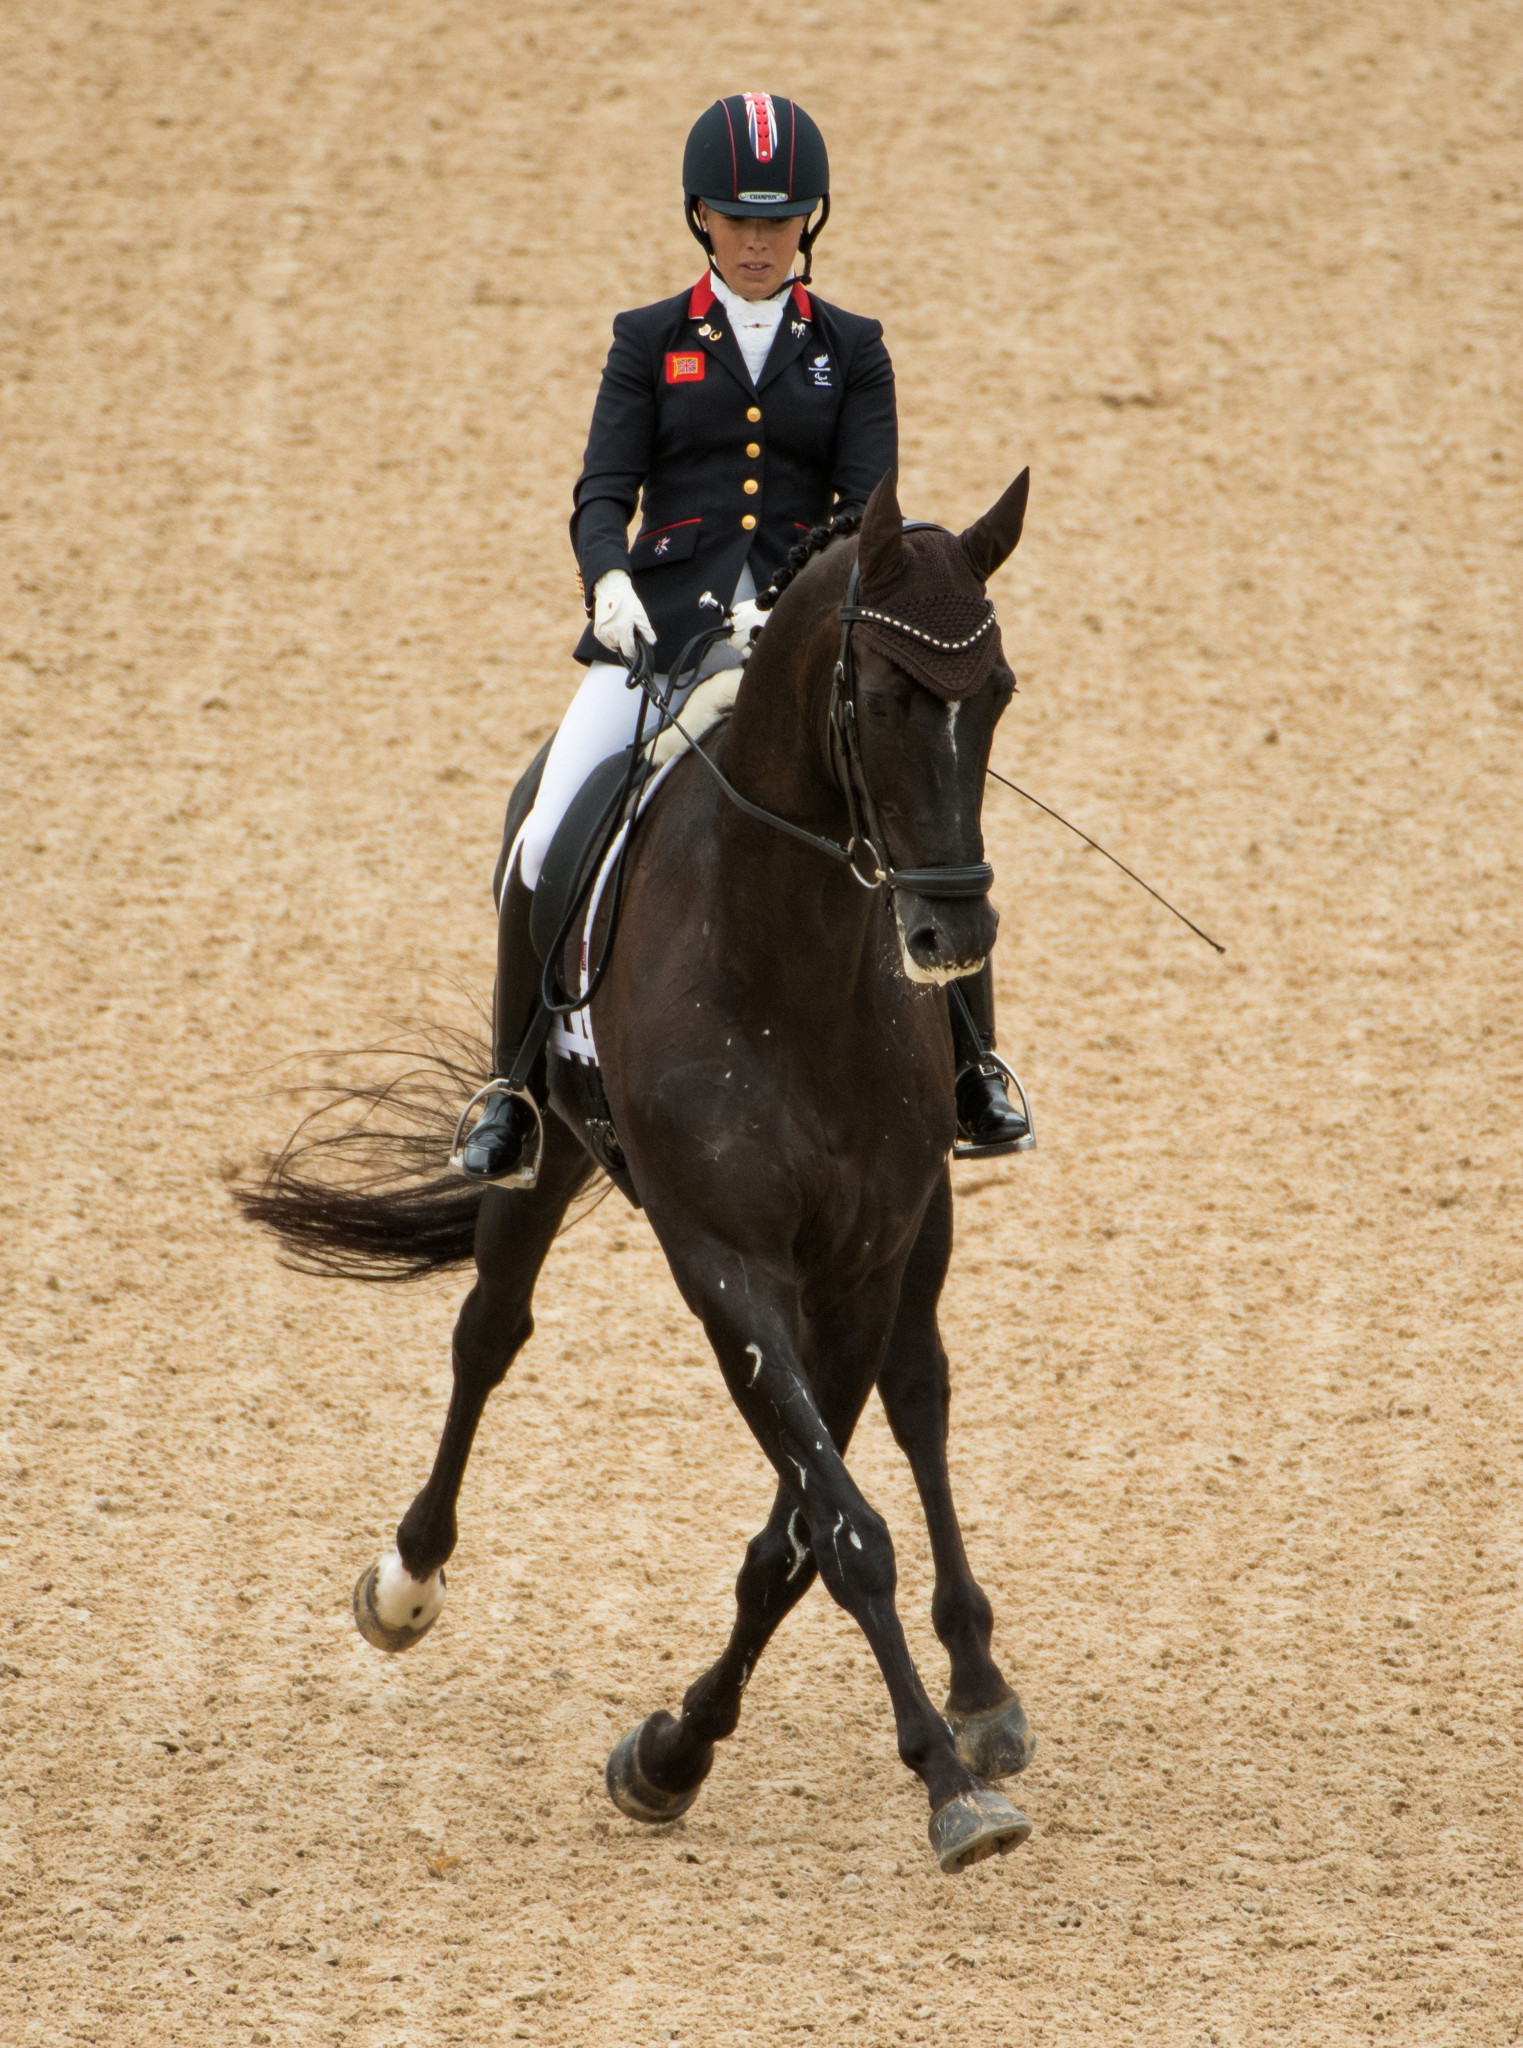 Wells hopeful fresh faces can bring success for British Para-dressage team at European Championships